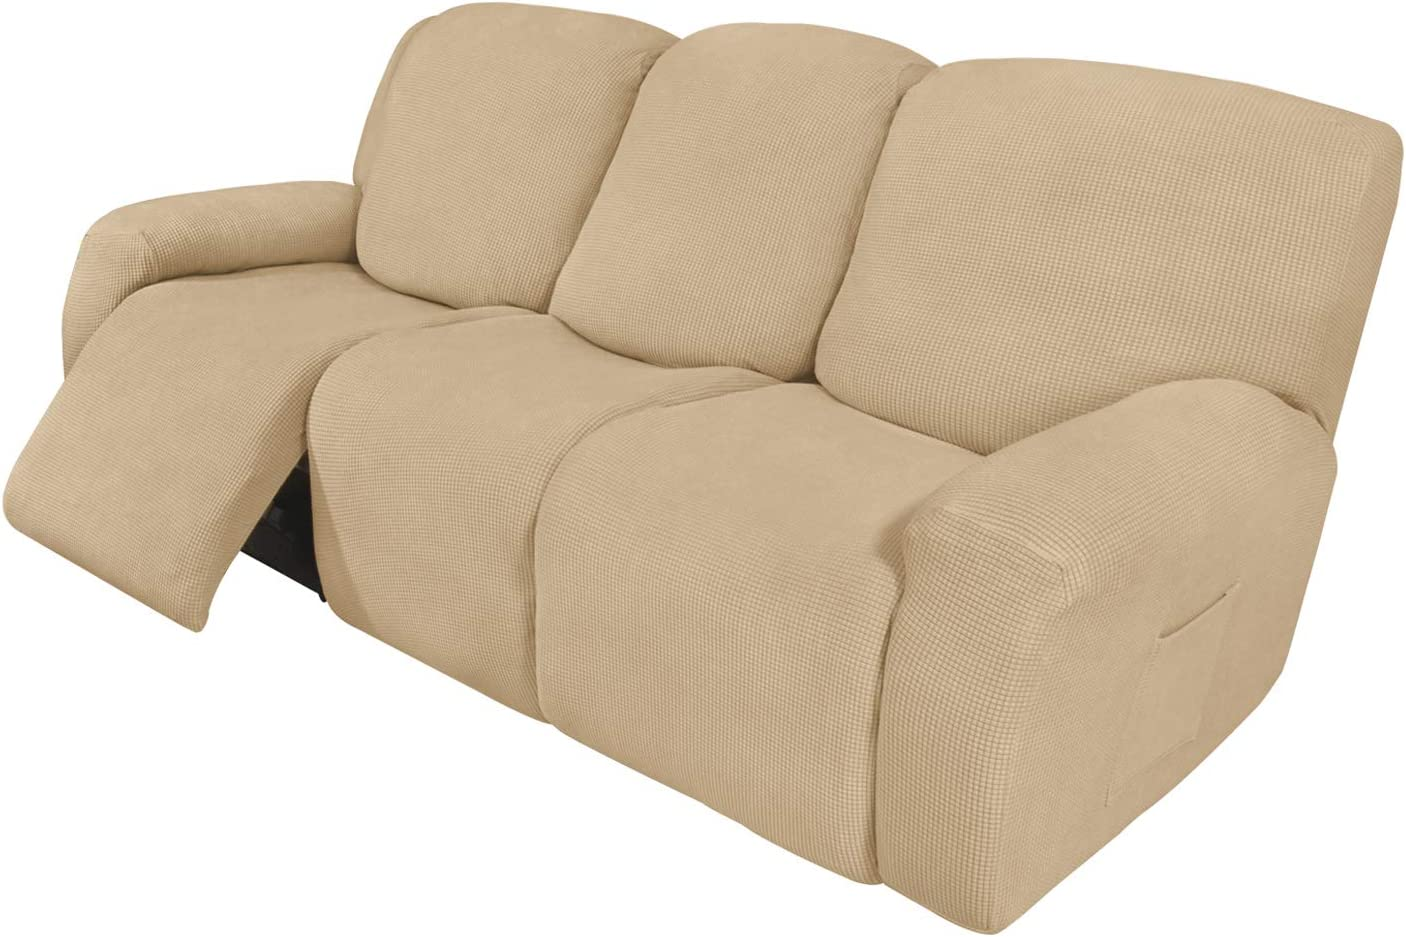 Easy-Going 8 Pieces Recliner Sofa Stretch Sofa Slipcover Sofa Cover Furniture Protector Couch Soft with Elastic Bottom Kids, Spandex Jacquard Fabric Small Checks Sand